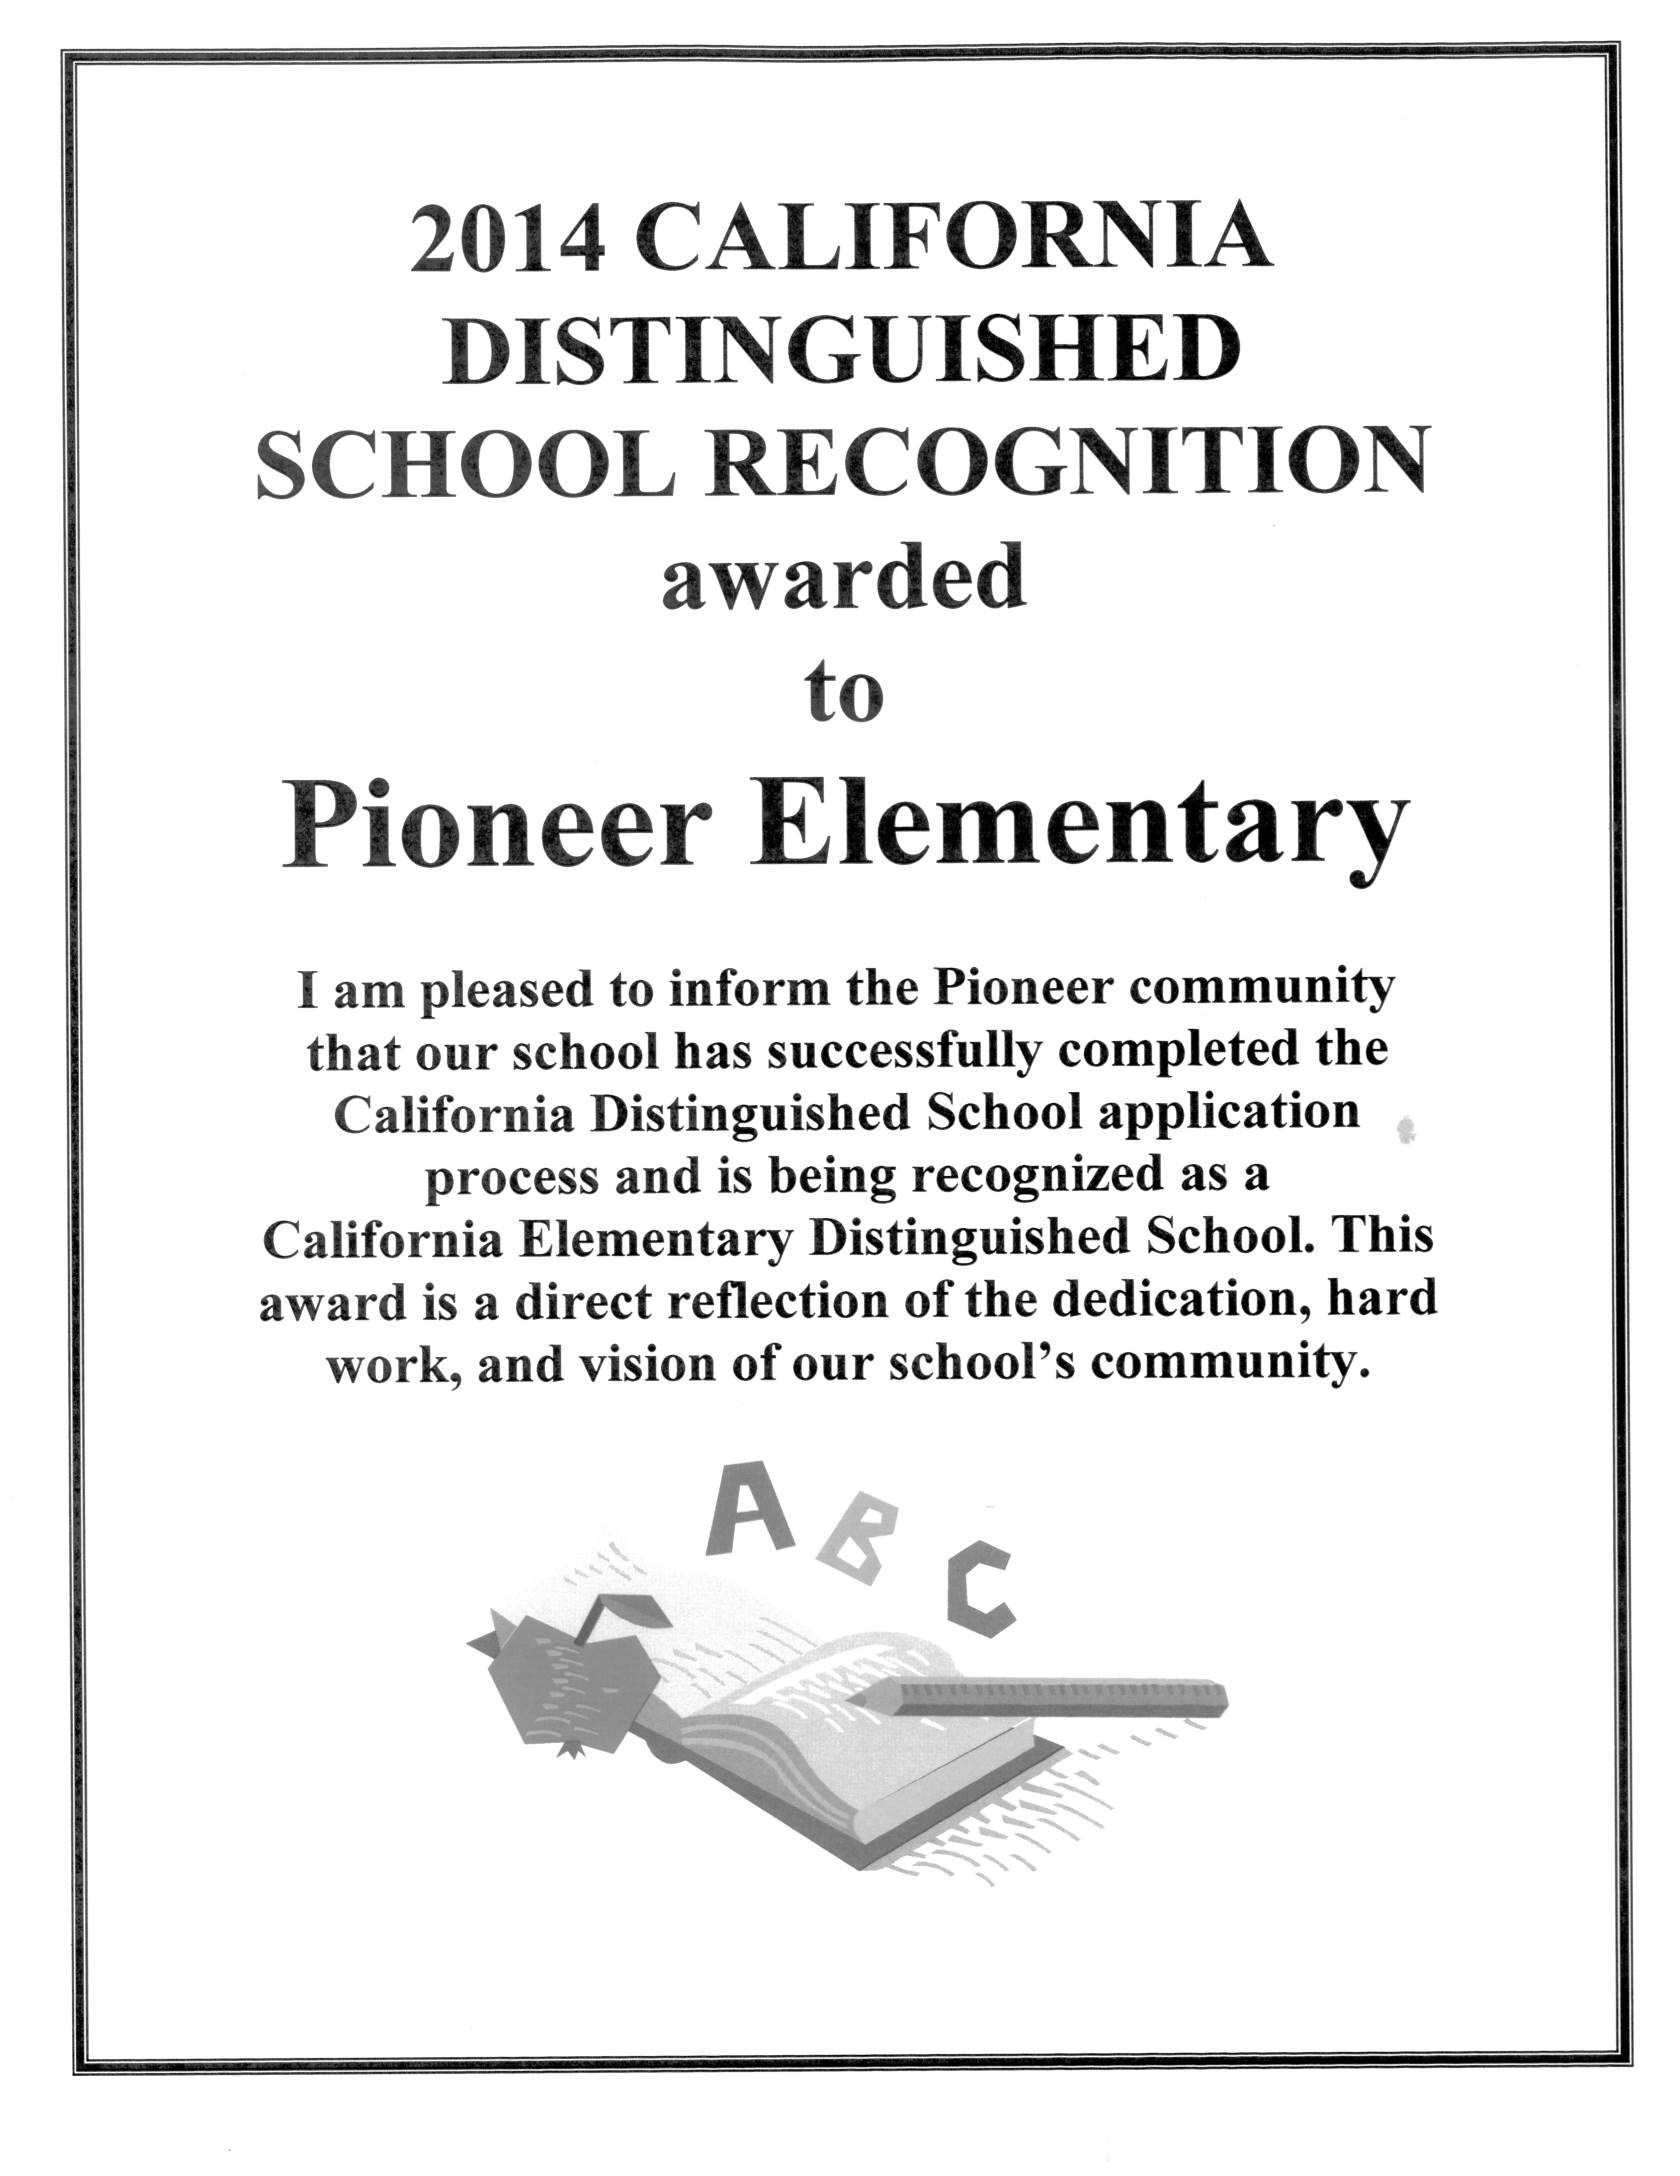 2014 Distinguished School Award